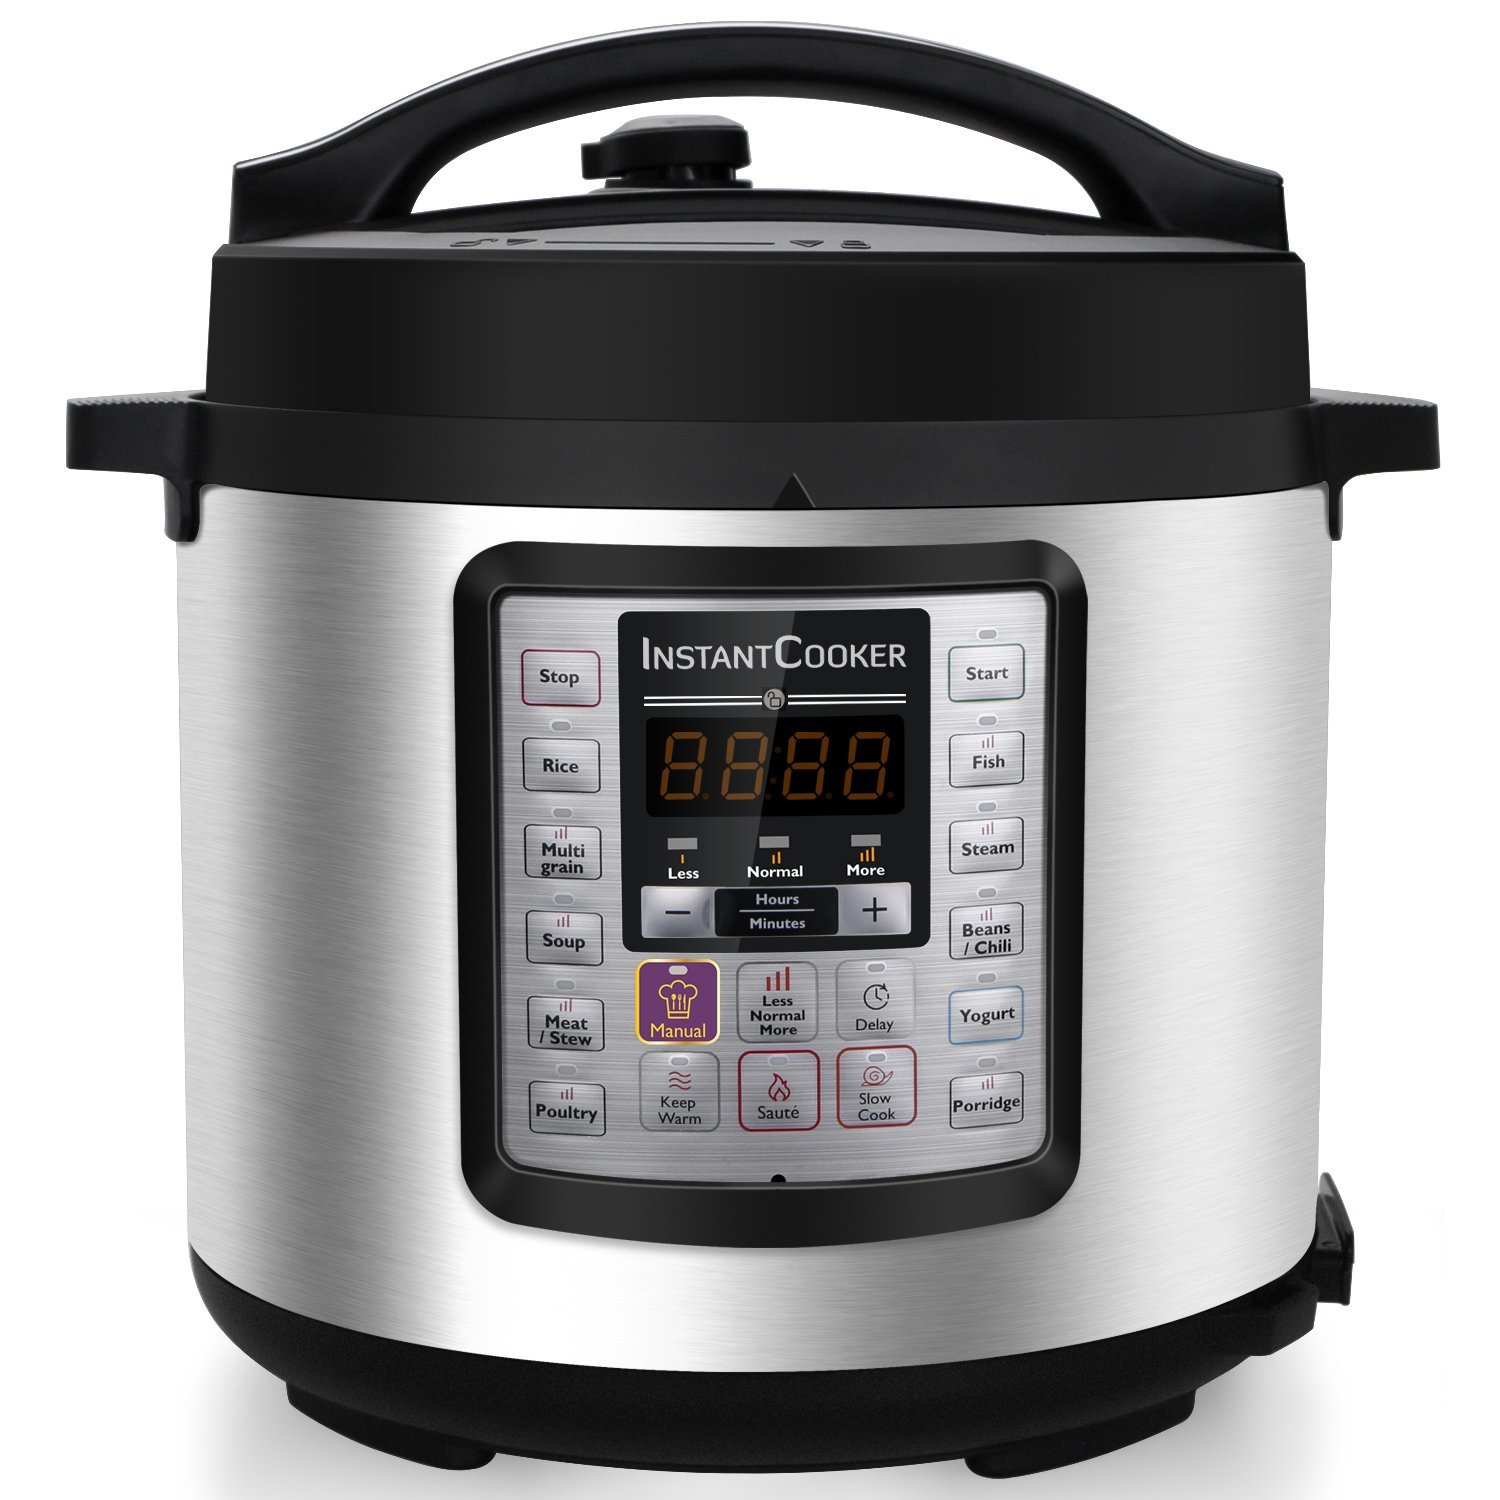 Instant Cooker IC60 7-in-1 Multi-Functional Programmable Pressure Cooker, 6Qt/1000W by Instant Cooker